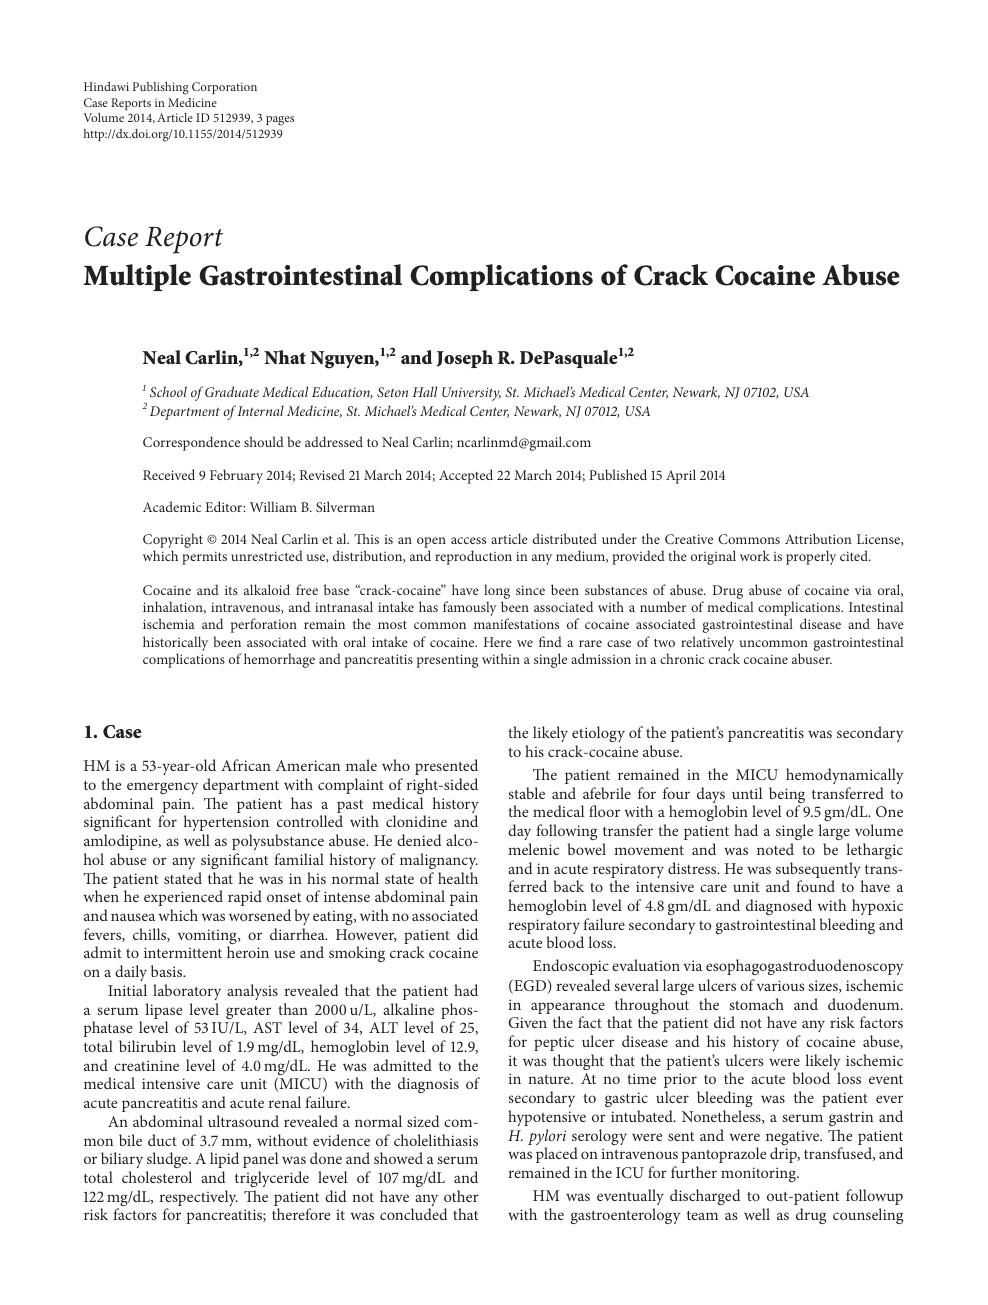 Multiple Gastrointestinal Complications of Crack Cocaine